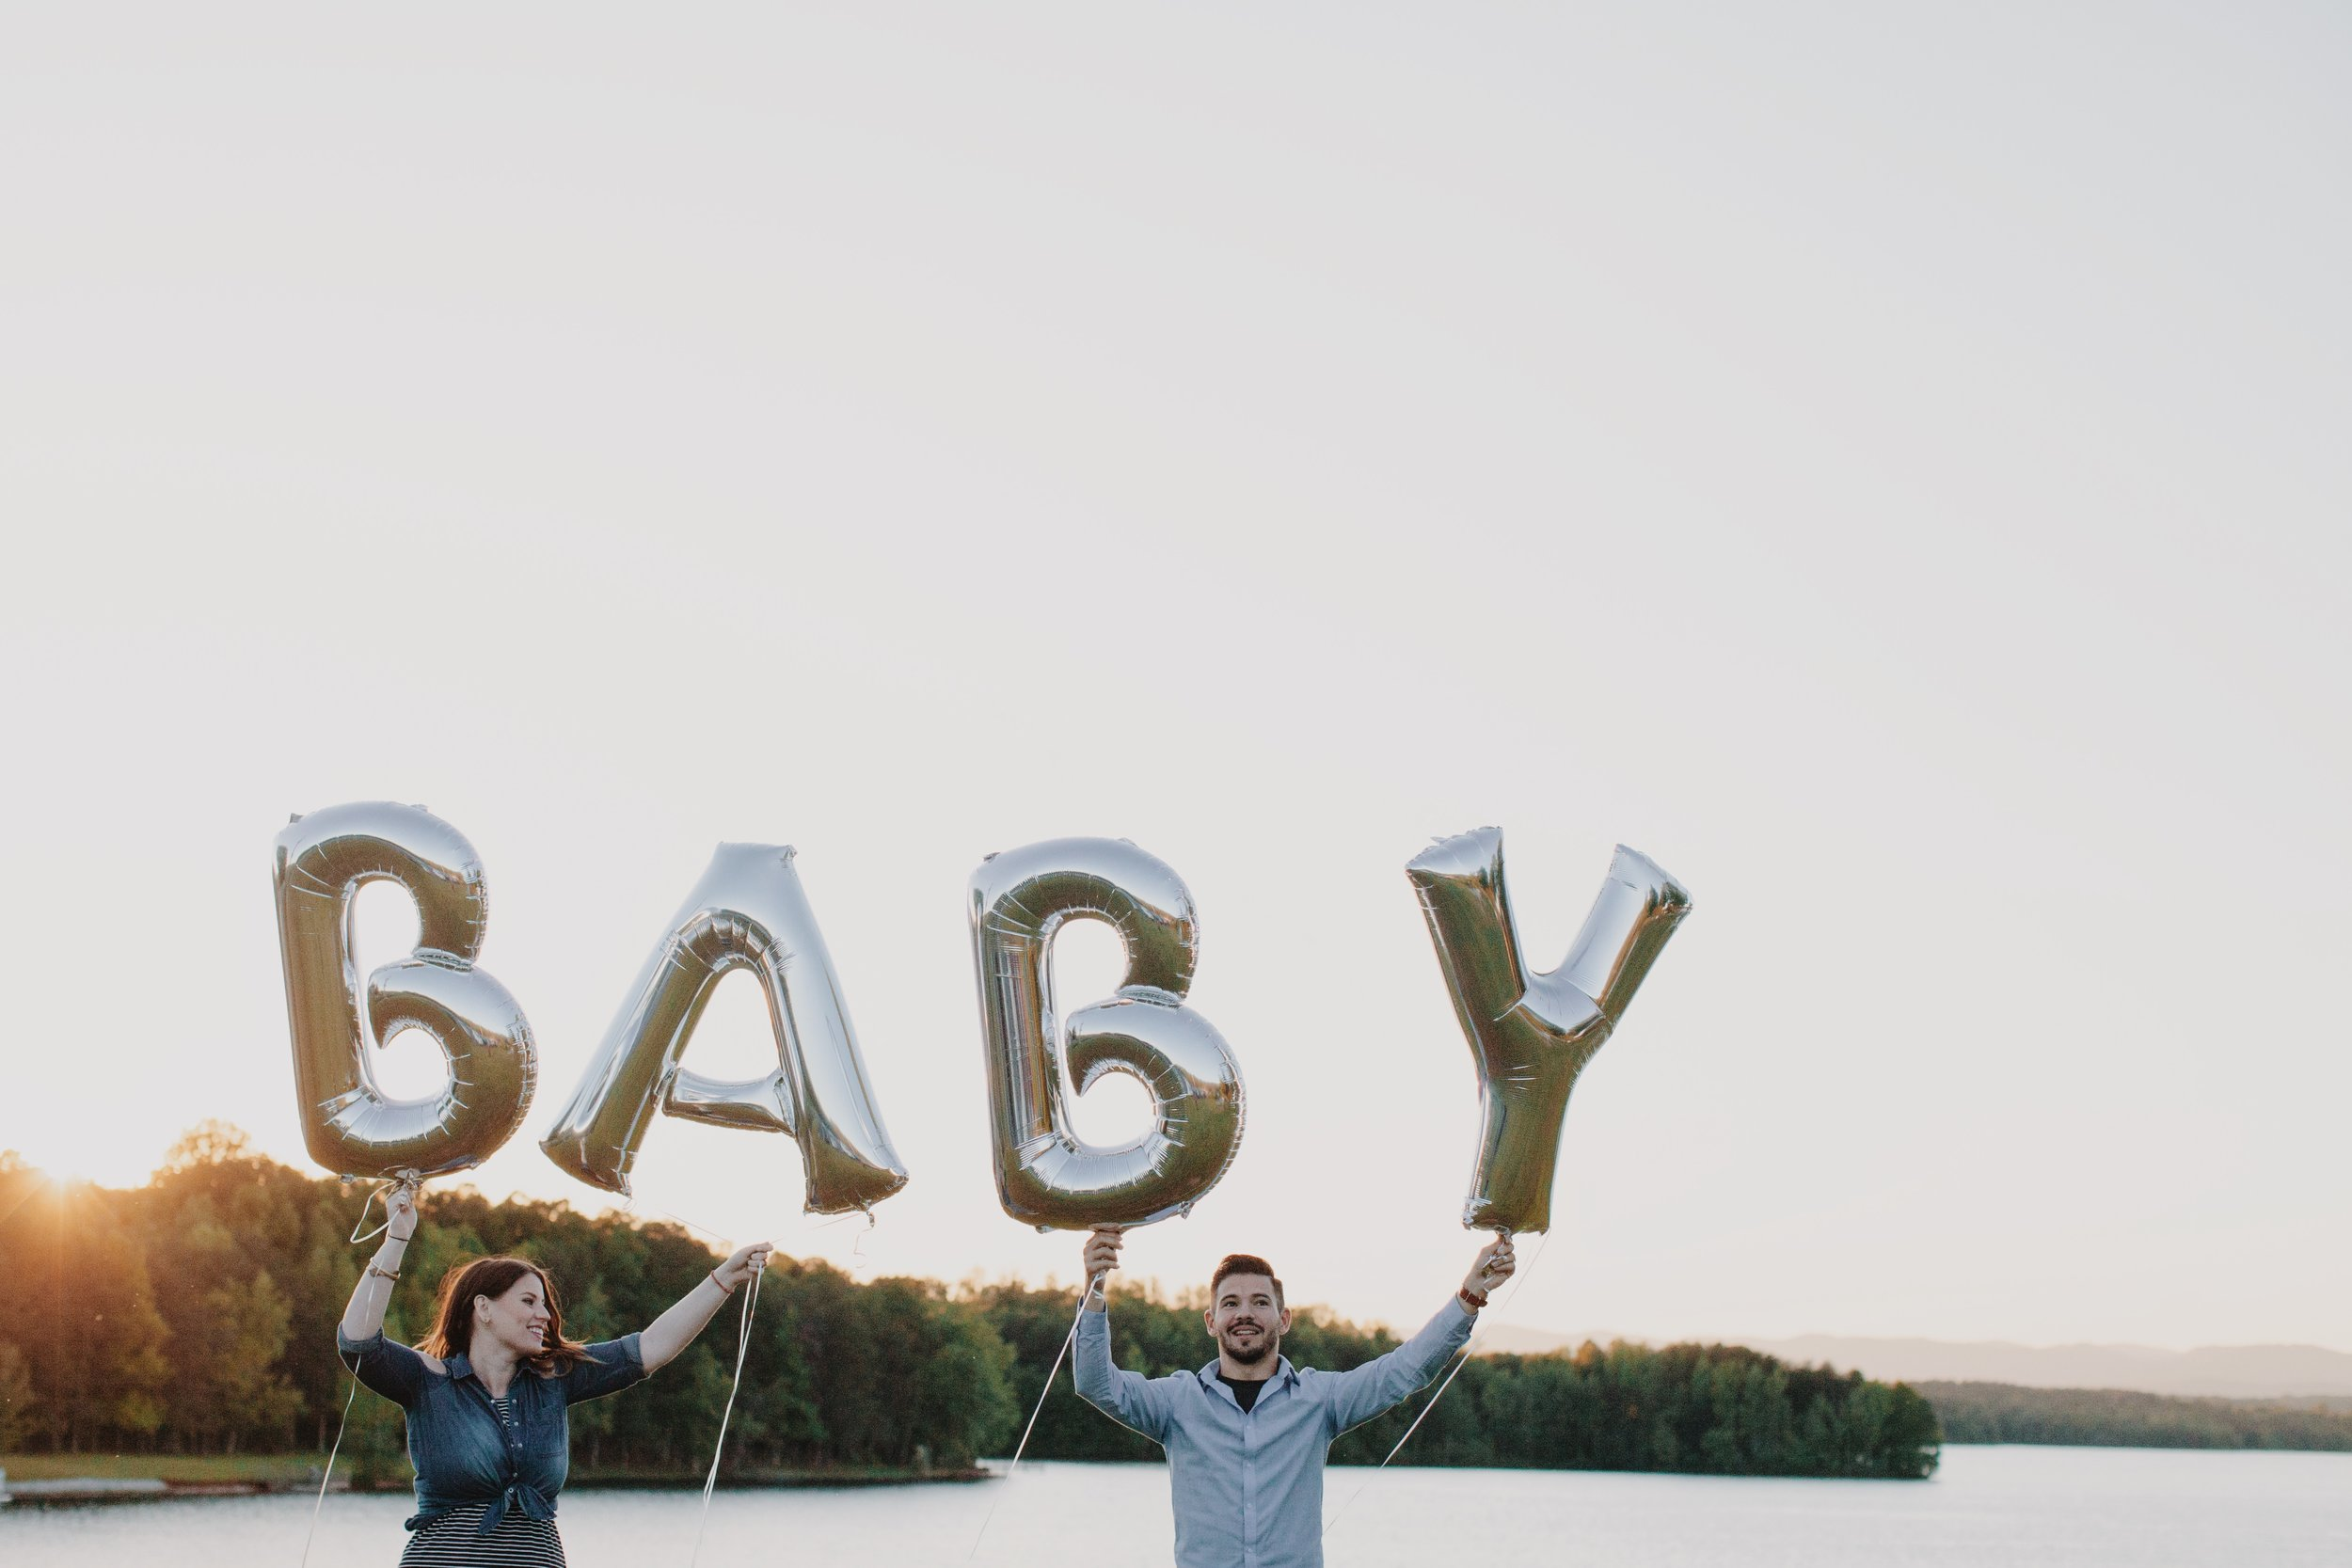 Baby Foret coming in October!! christinaforet.com